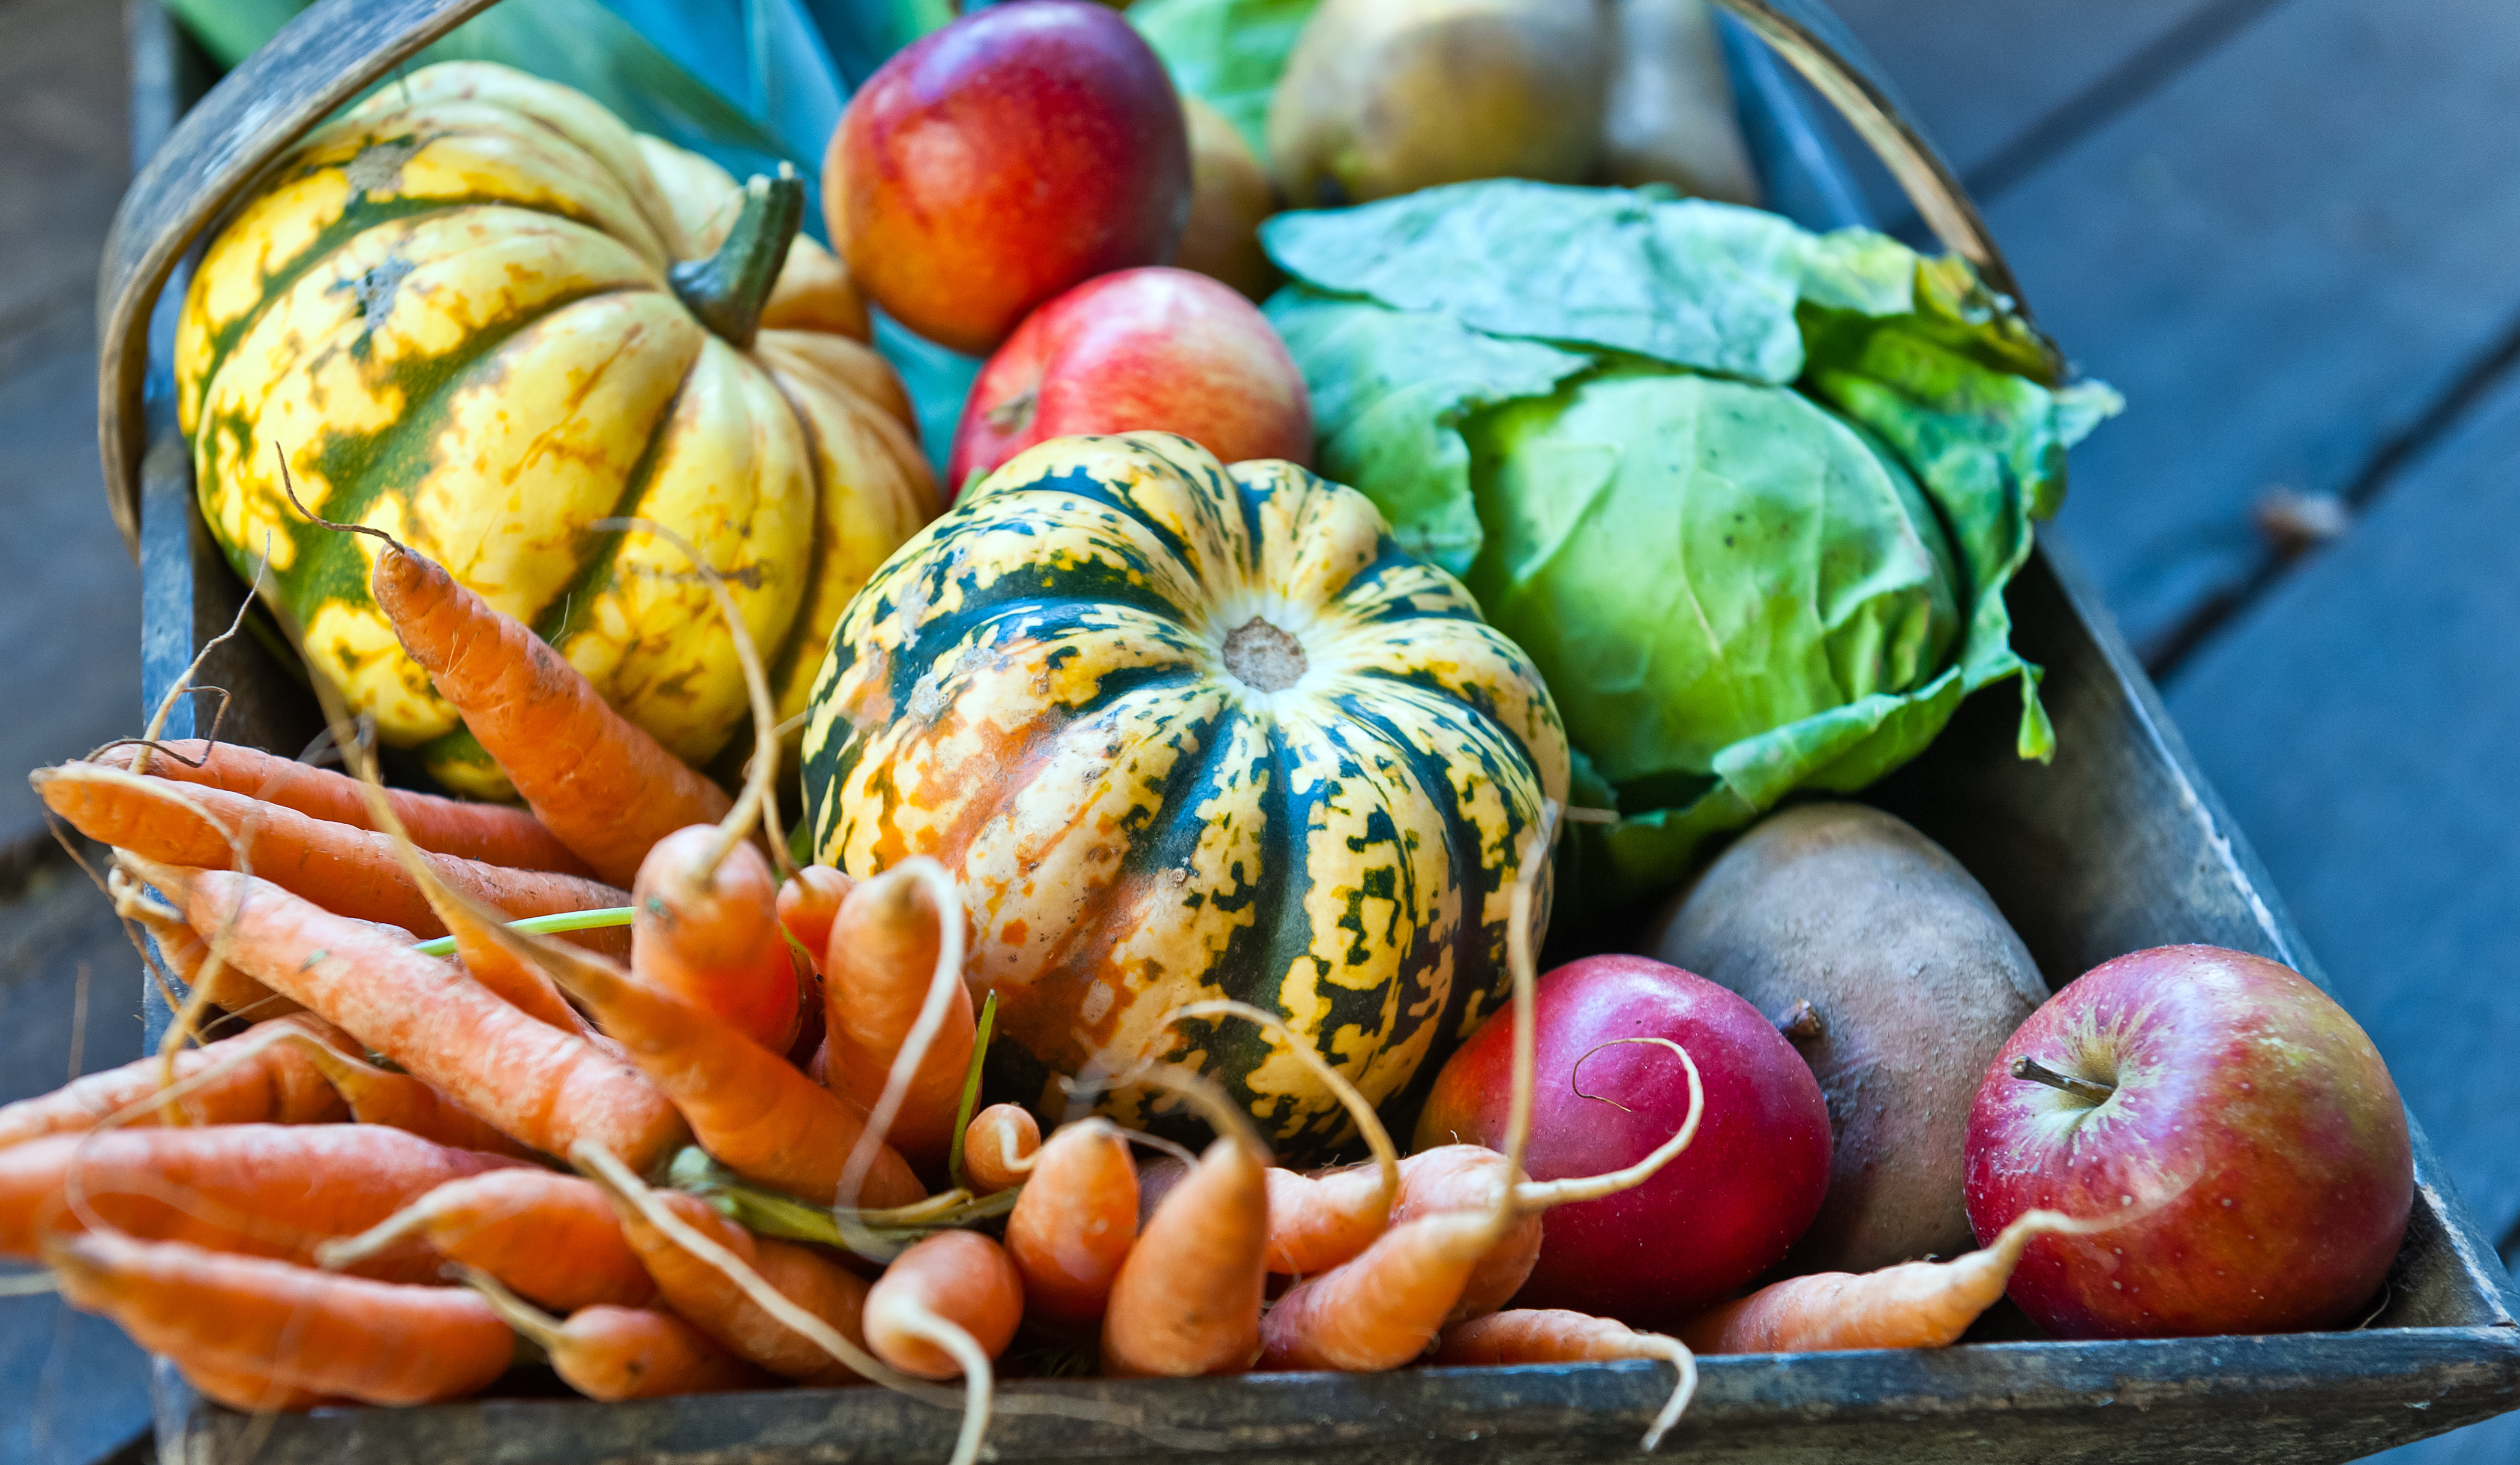 Squash, turnips and even more winter produce